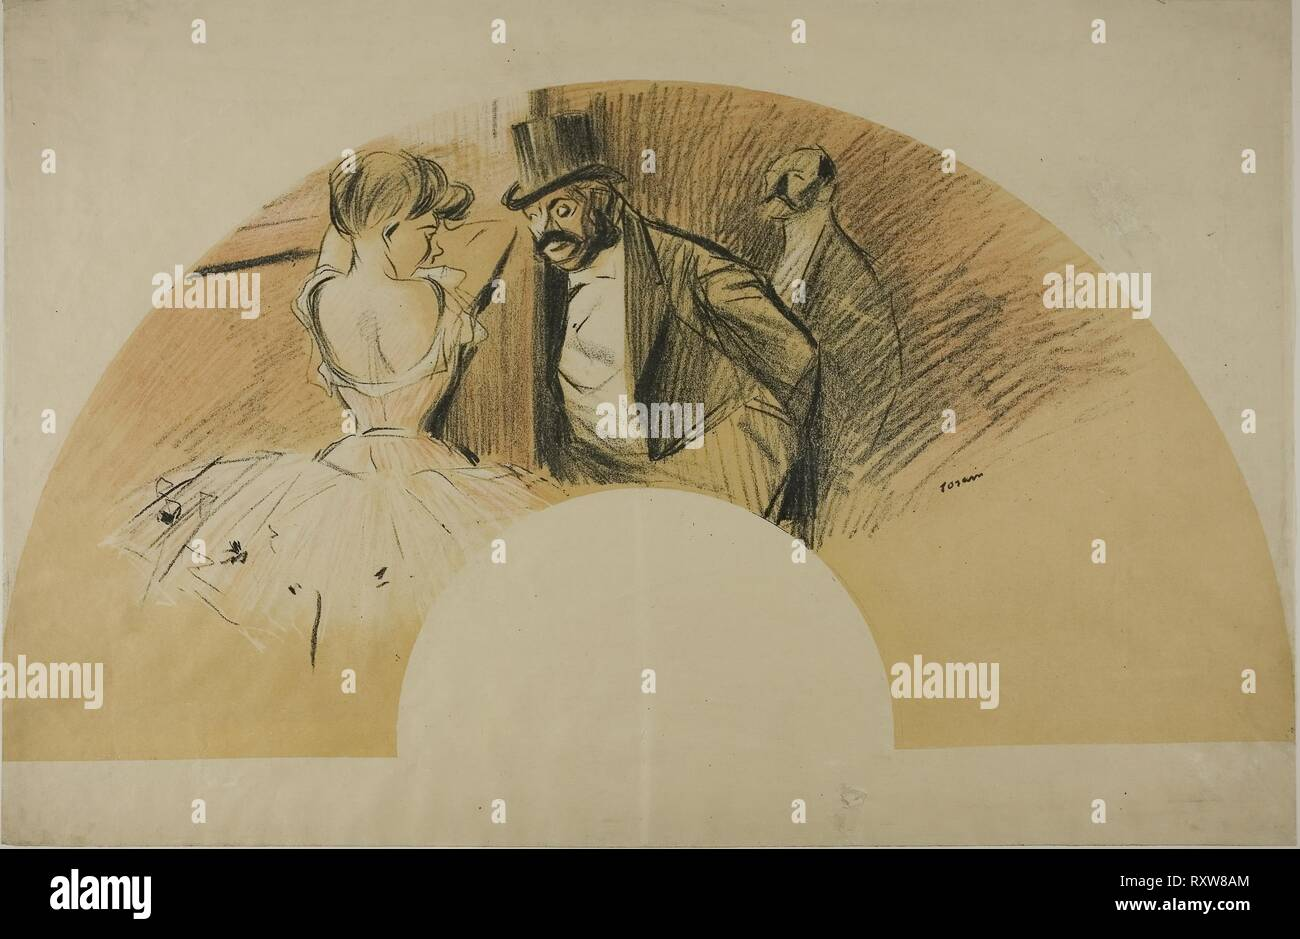 Fan for the Gavarni Ball. Jean Louis Forain; French, 1852-1931. Date: 1903. Dimensions: 260 × 493 mm (image); 324 × 493 mm (sheet). Color lithograph in black, white, orange, and red on cream wove paper. Origin: France. Museum: The Chicago Art Institute. - Stock Image